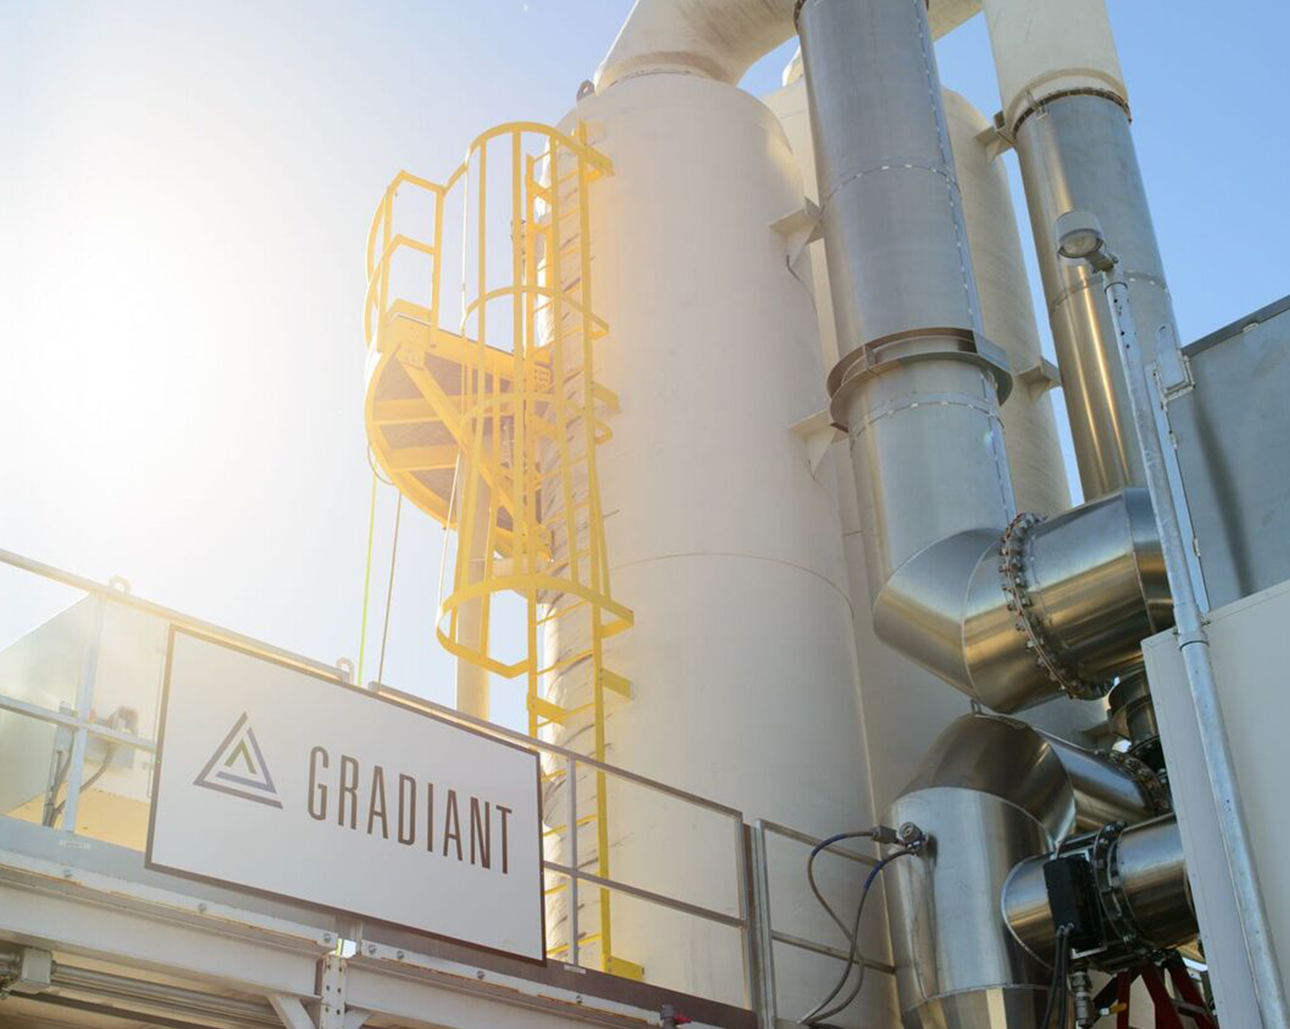 Water treatment systems from Gradiant